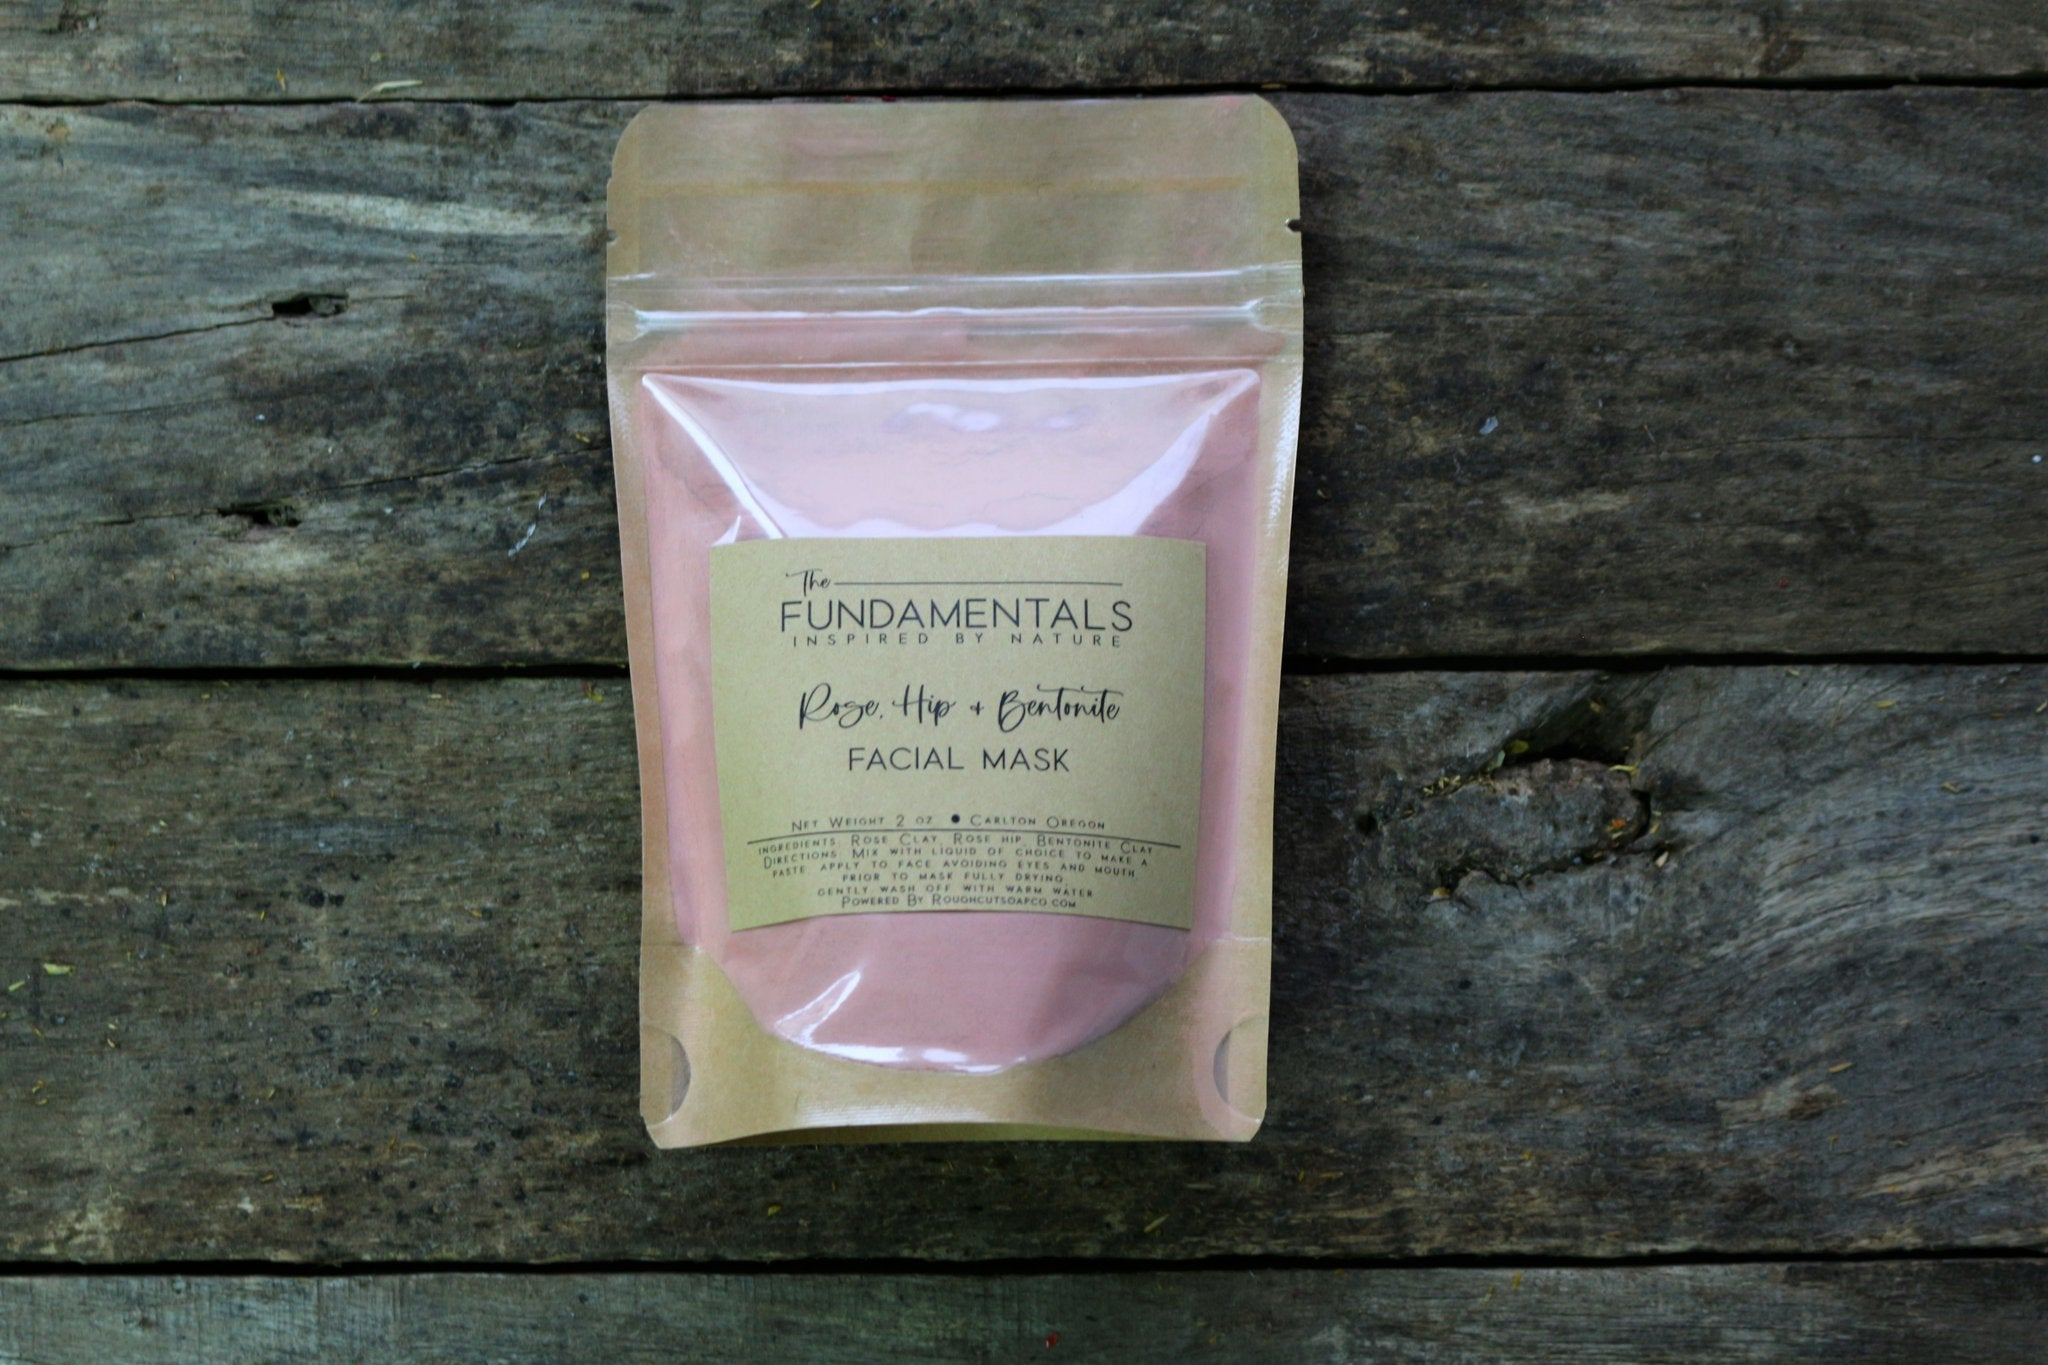 Rose Hip & Bentonite Facial Mask